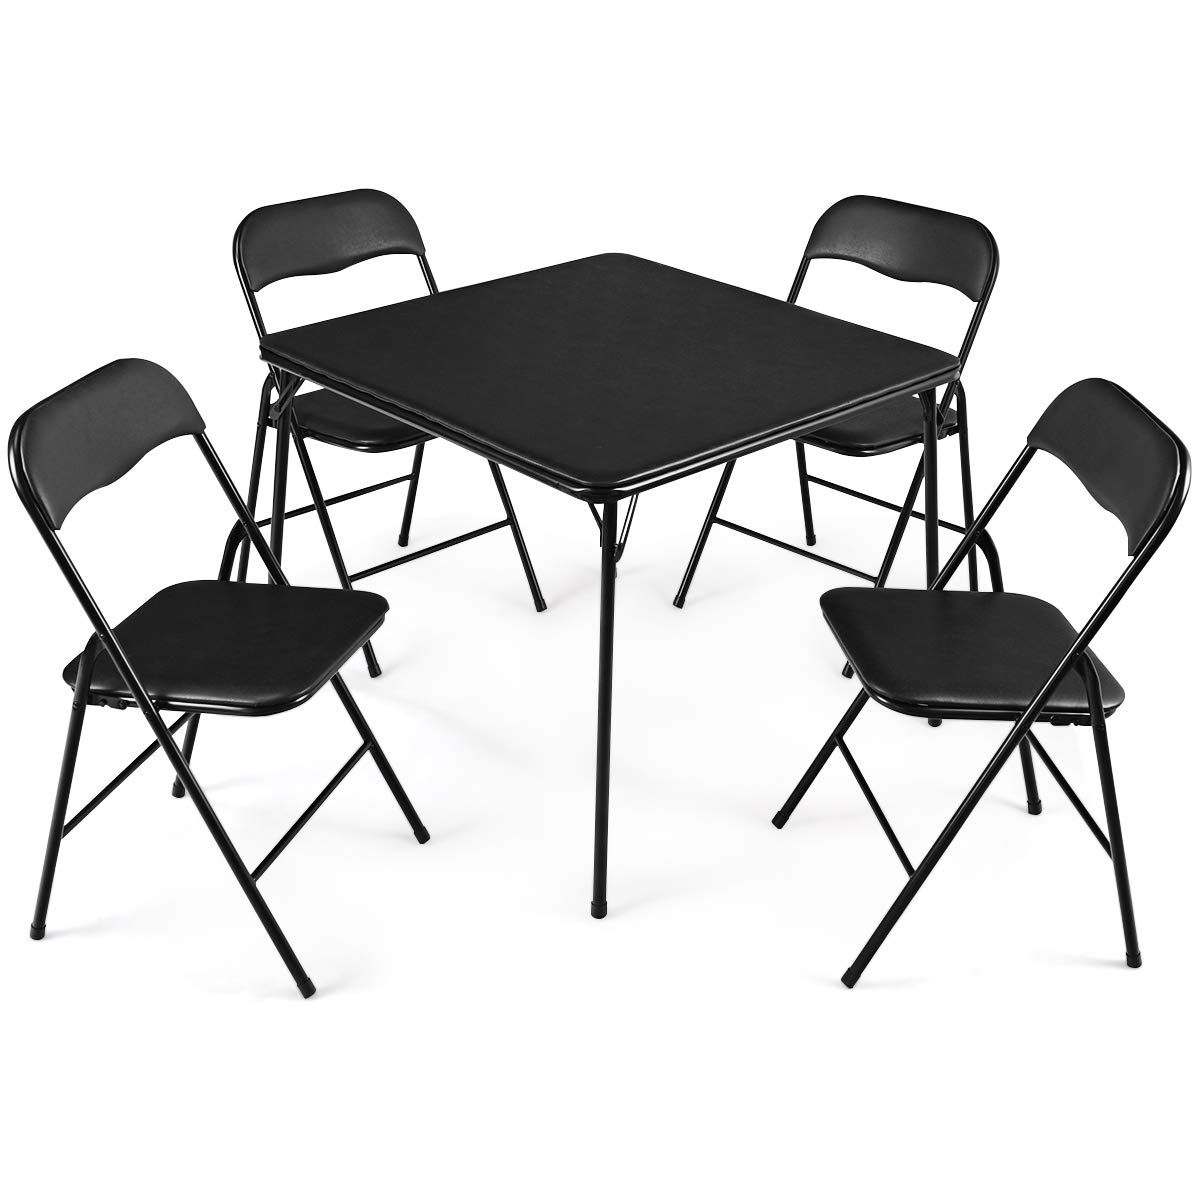 Amazon.com - Giantex 5-Piece Folding Table and Chairs Set ...